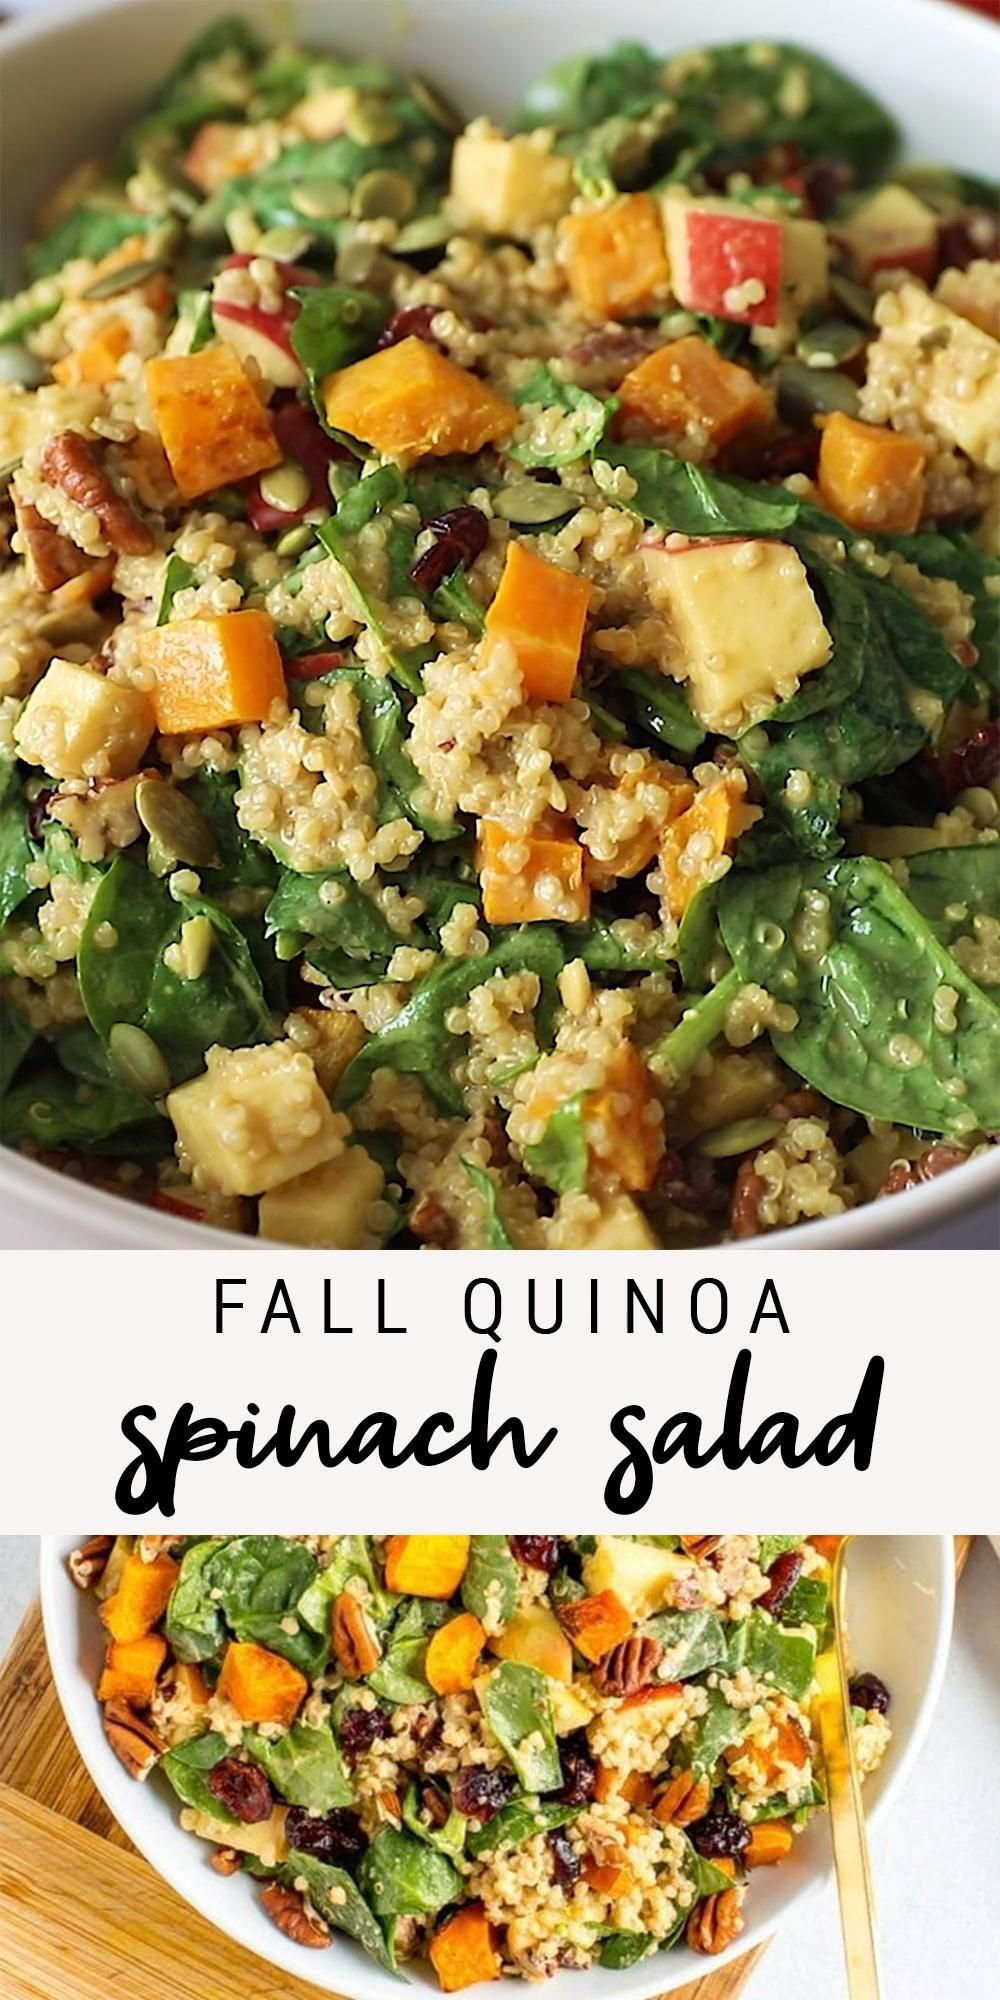 Photo of Fall Quinoa Spinach Salad | Healthy Salad with Butternut Squash, Apples, Cranberries and Pecans